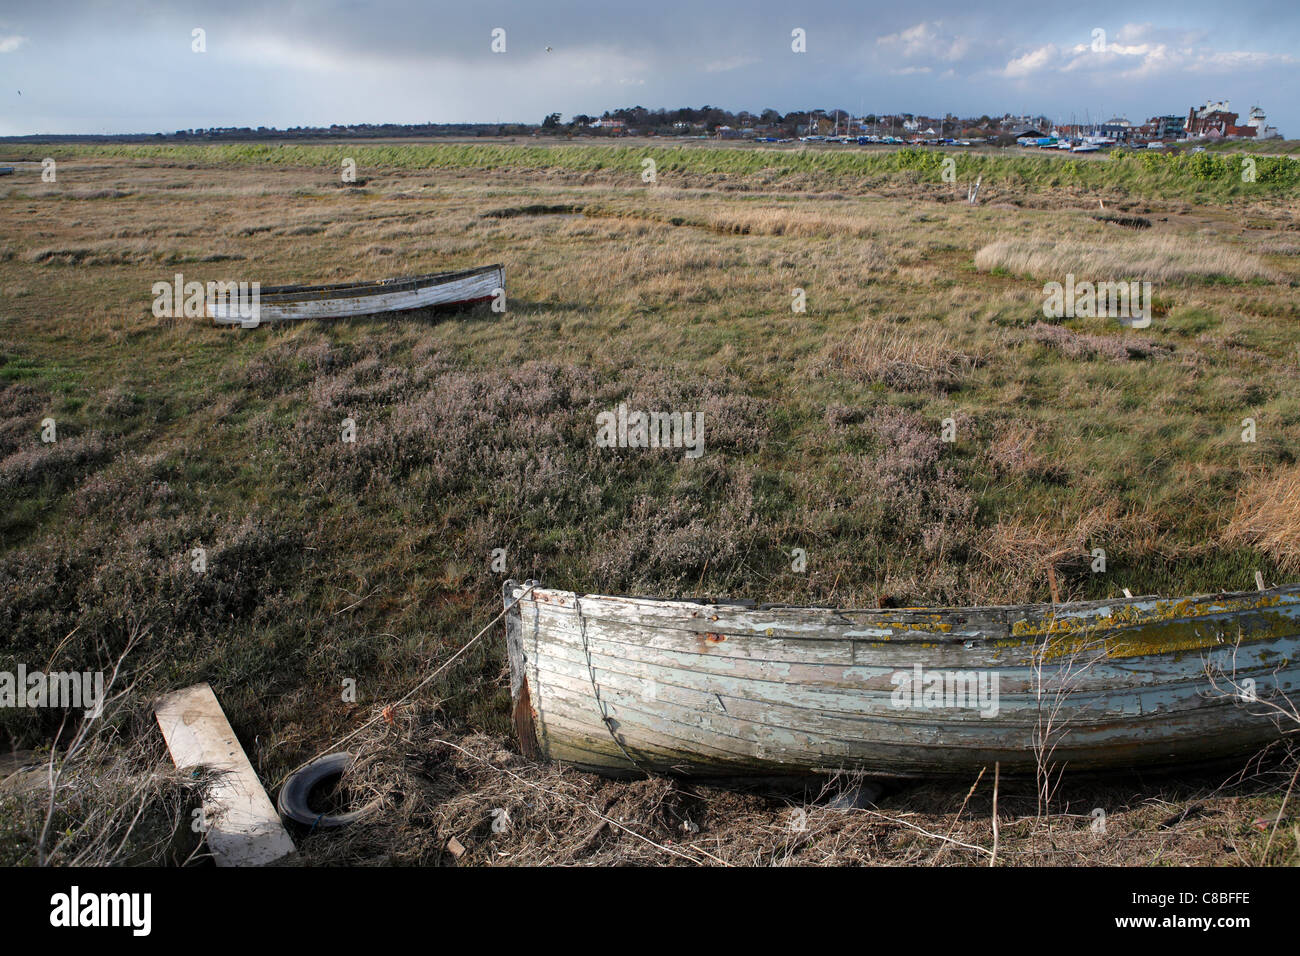 Abandoned clinker built boats in the saltings Slaughden Quay, Suffolk, UK Stock Photo